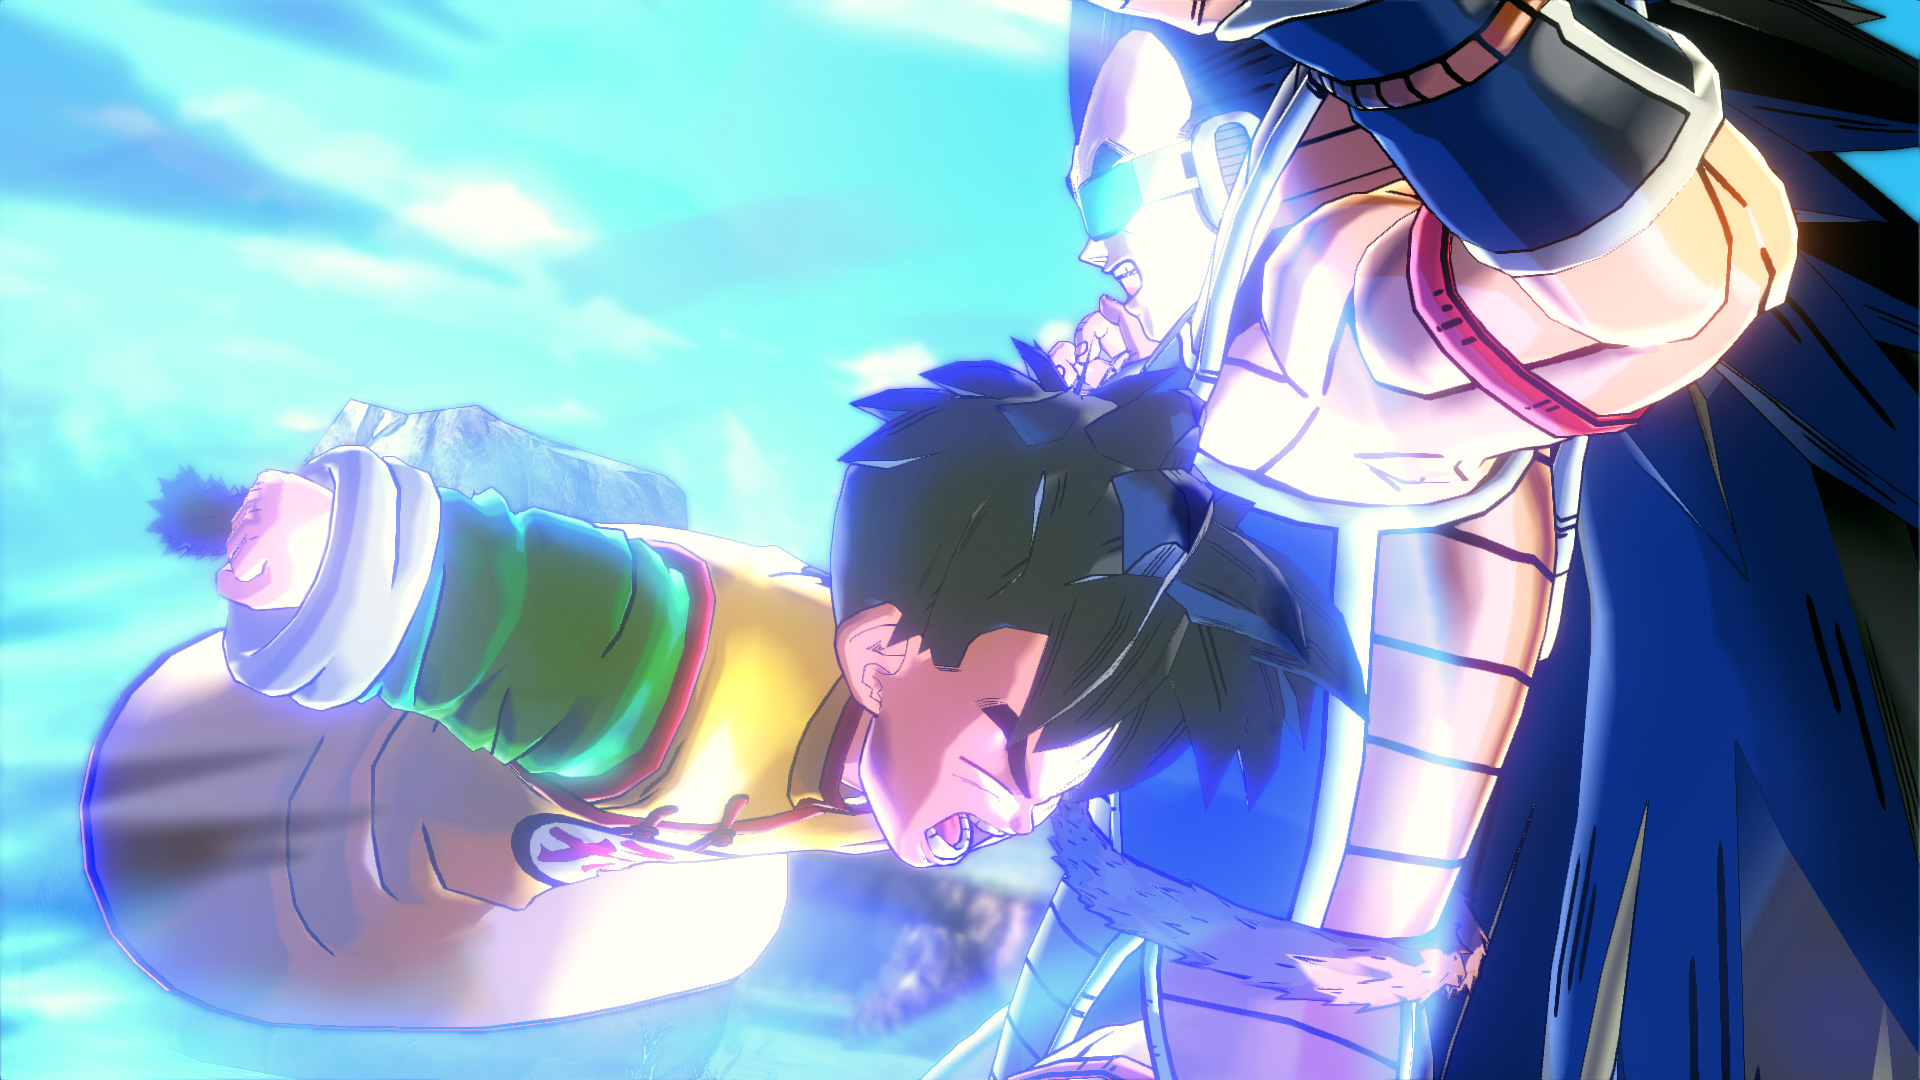 Dragon-Ball-Z-Xenoverse-History-is-Changing-Screenshot-1